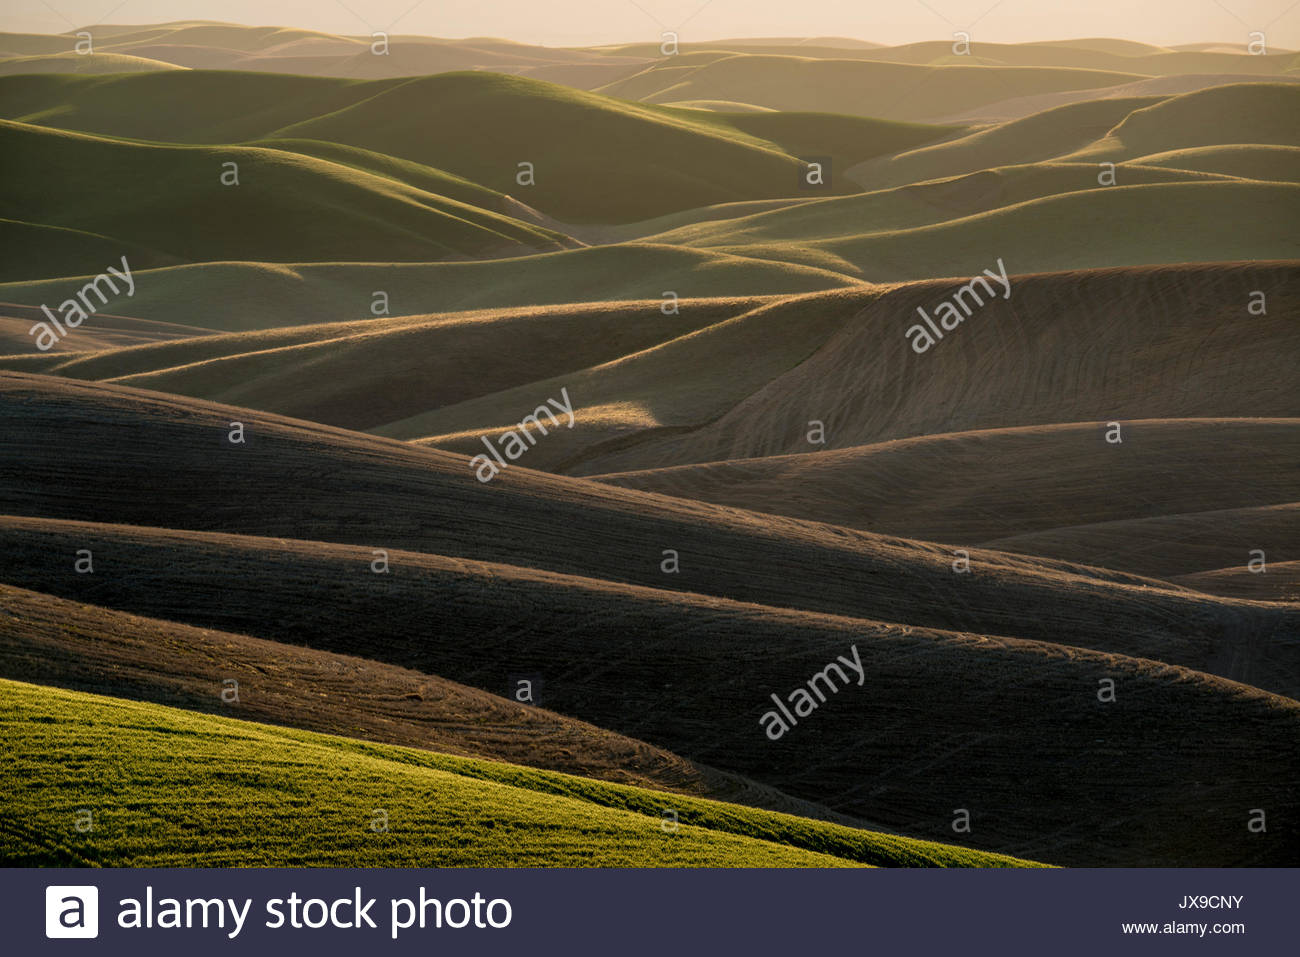 Channeled scablands stock photos channeled scablands for What is rich soil called